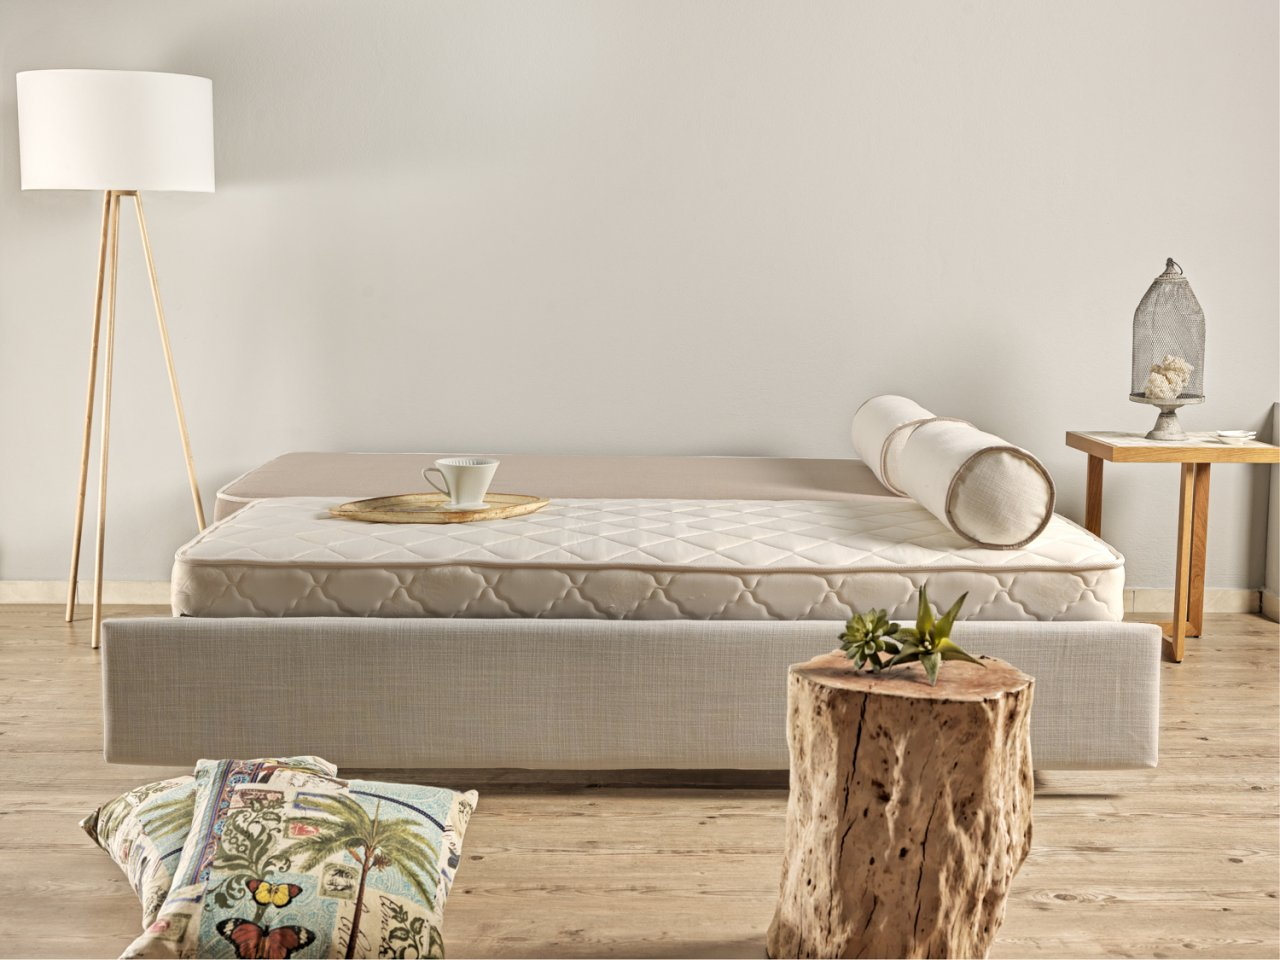 Four Seater Sofa Bed Marocco Two Single Beds Or One Double Bed